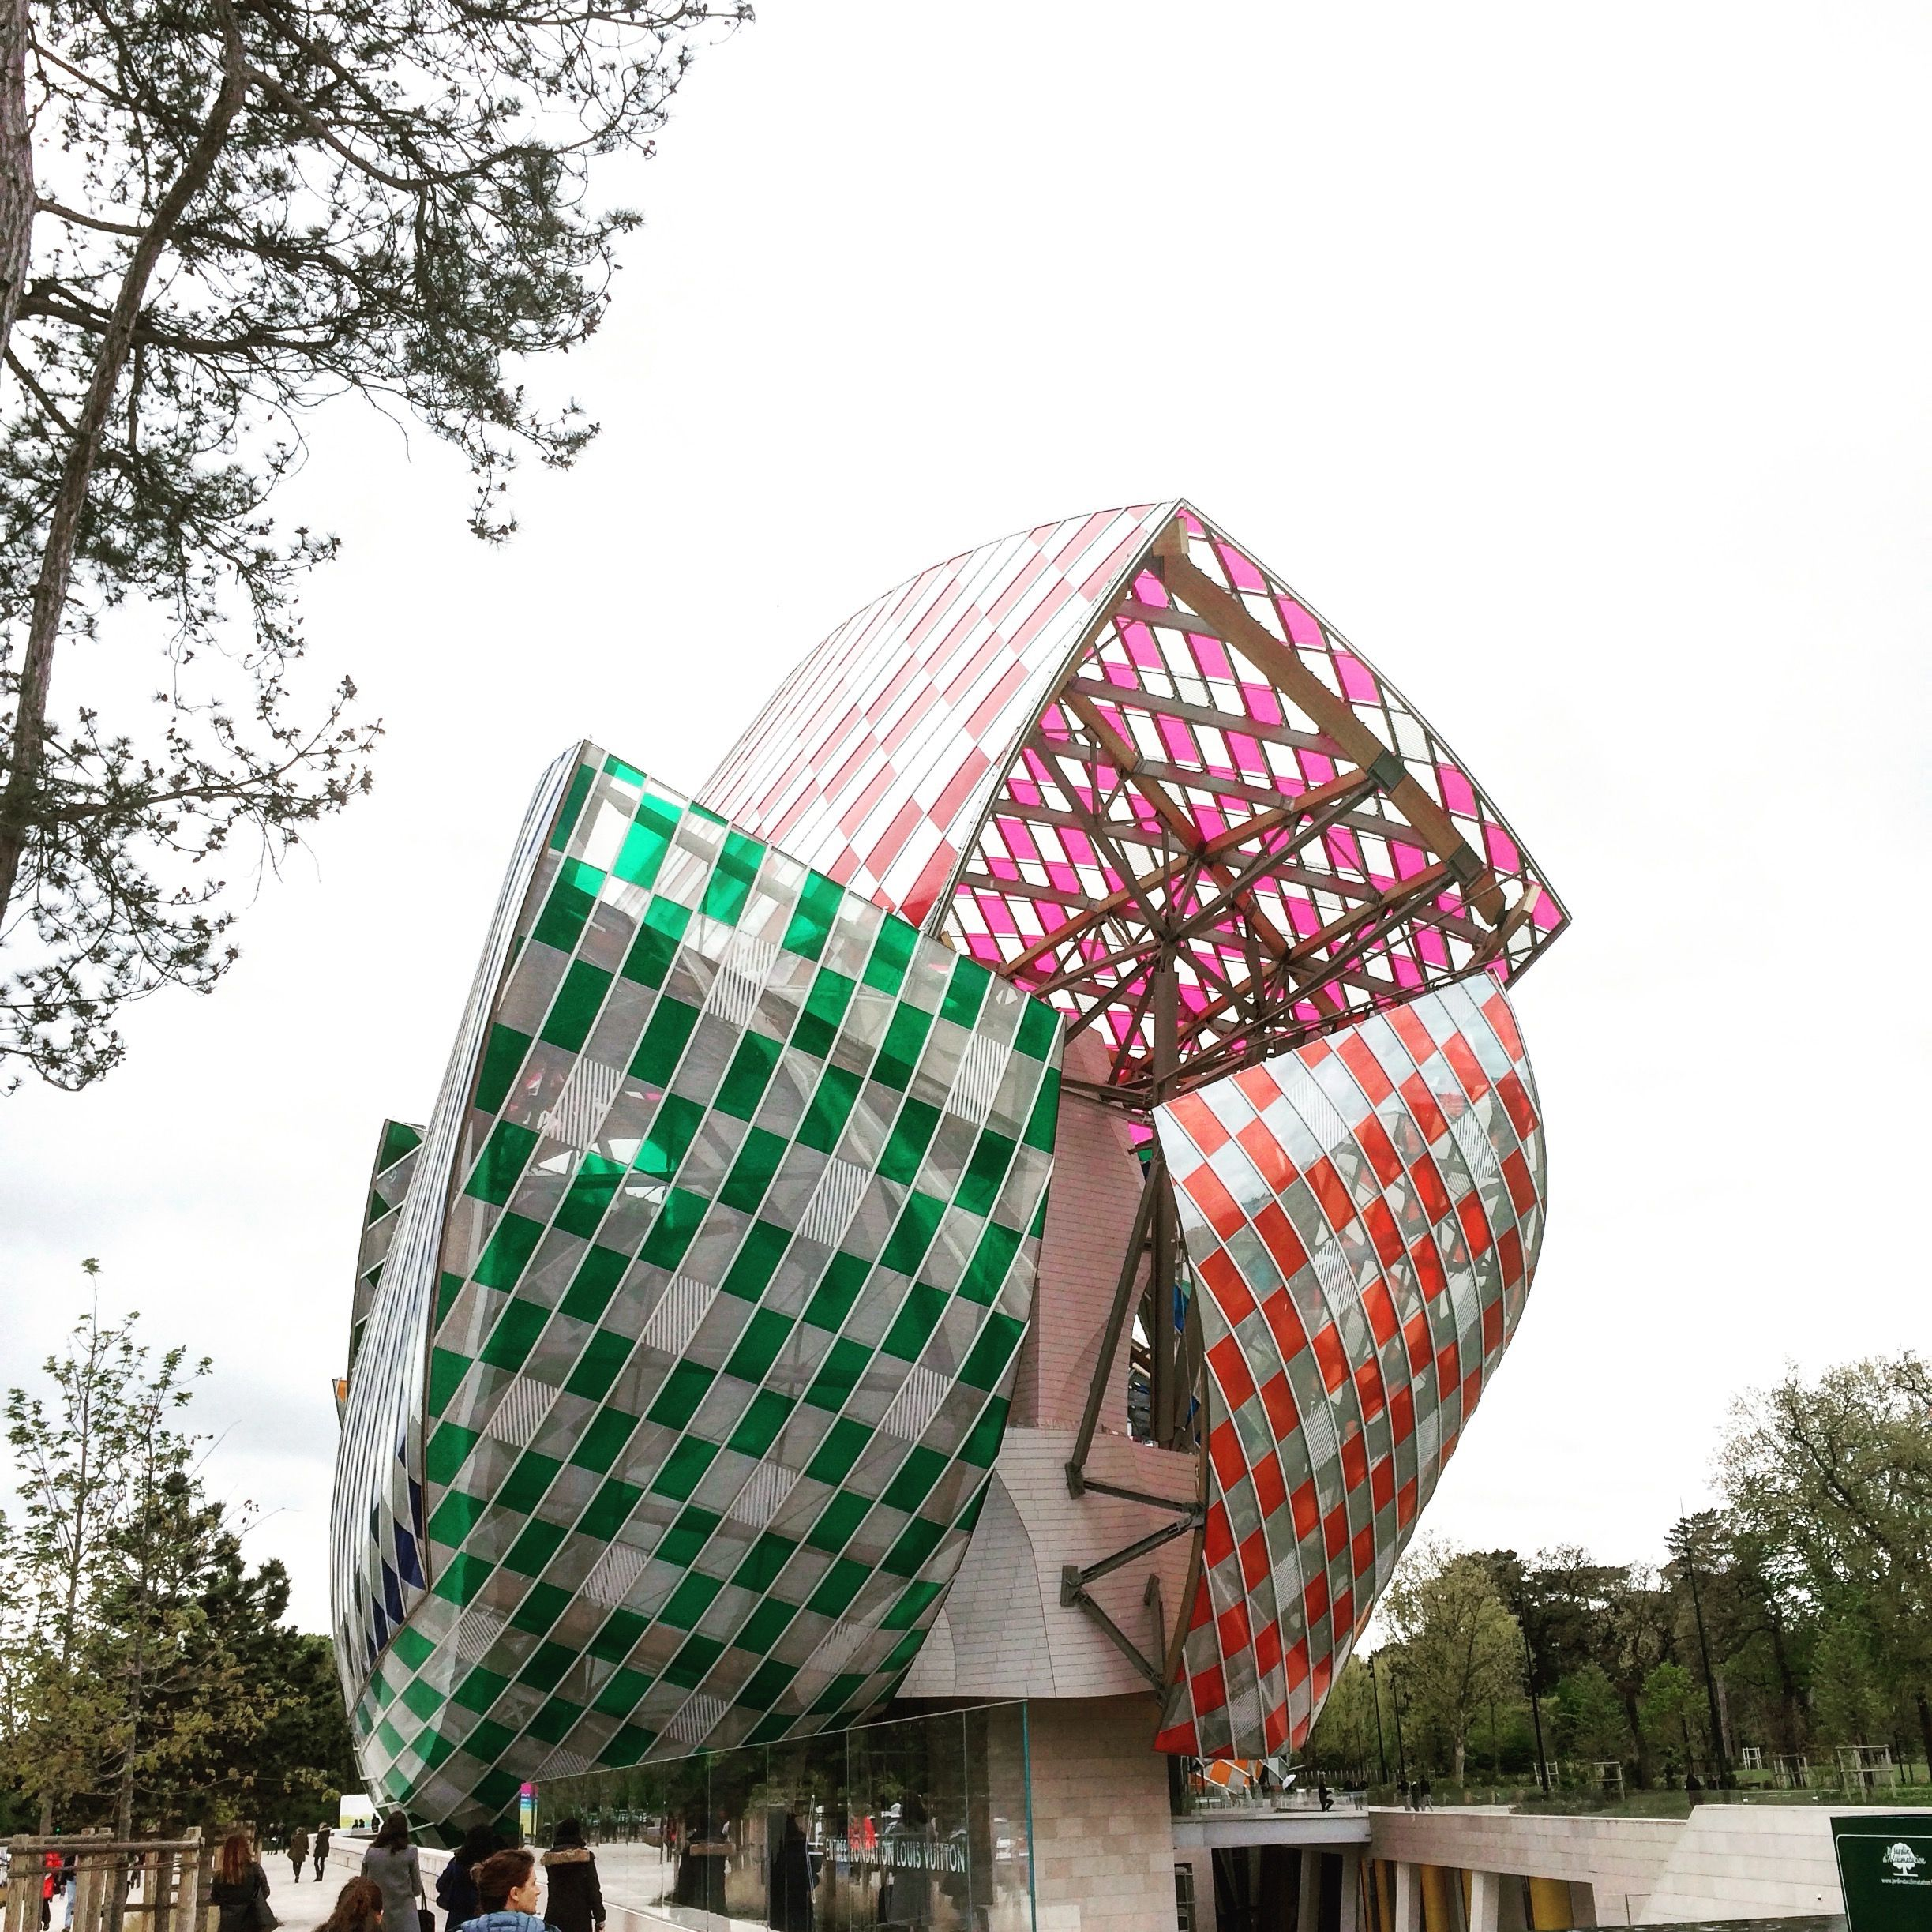 The Fondation Louis Vuitton situated in the Bois de Boulogne a